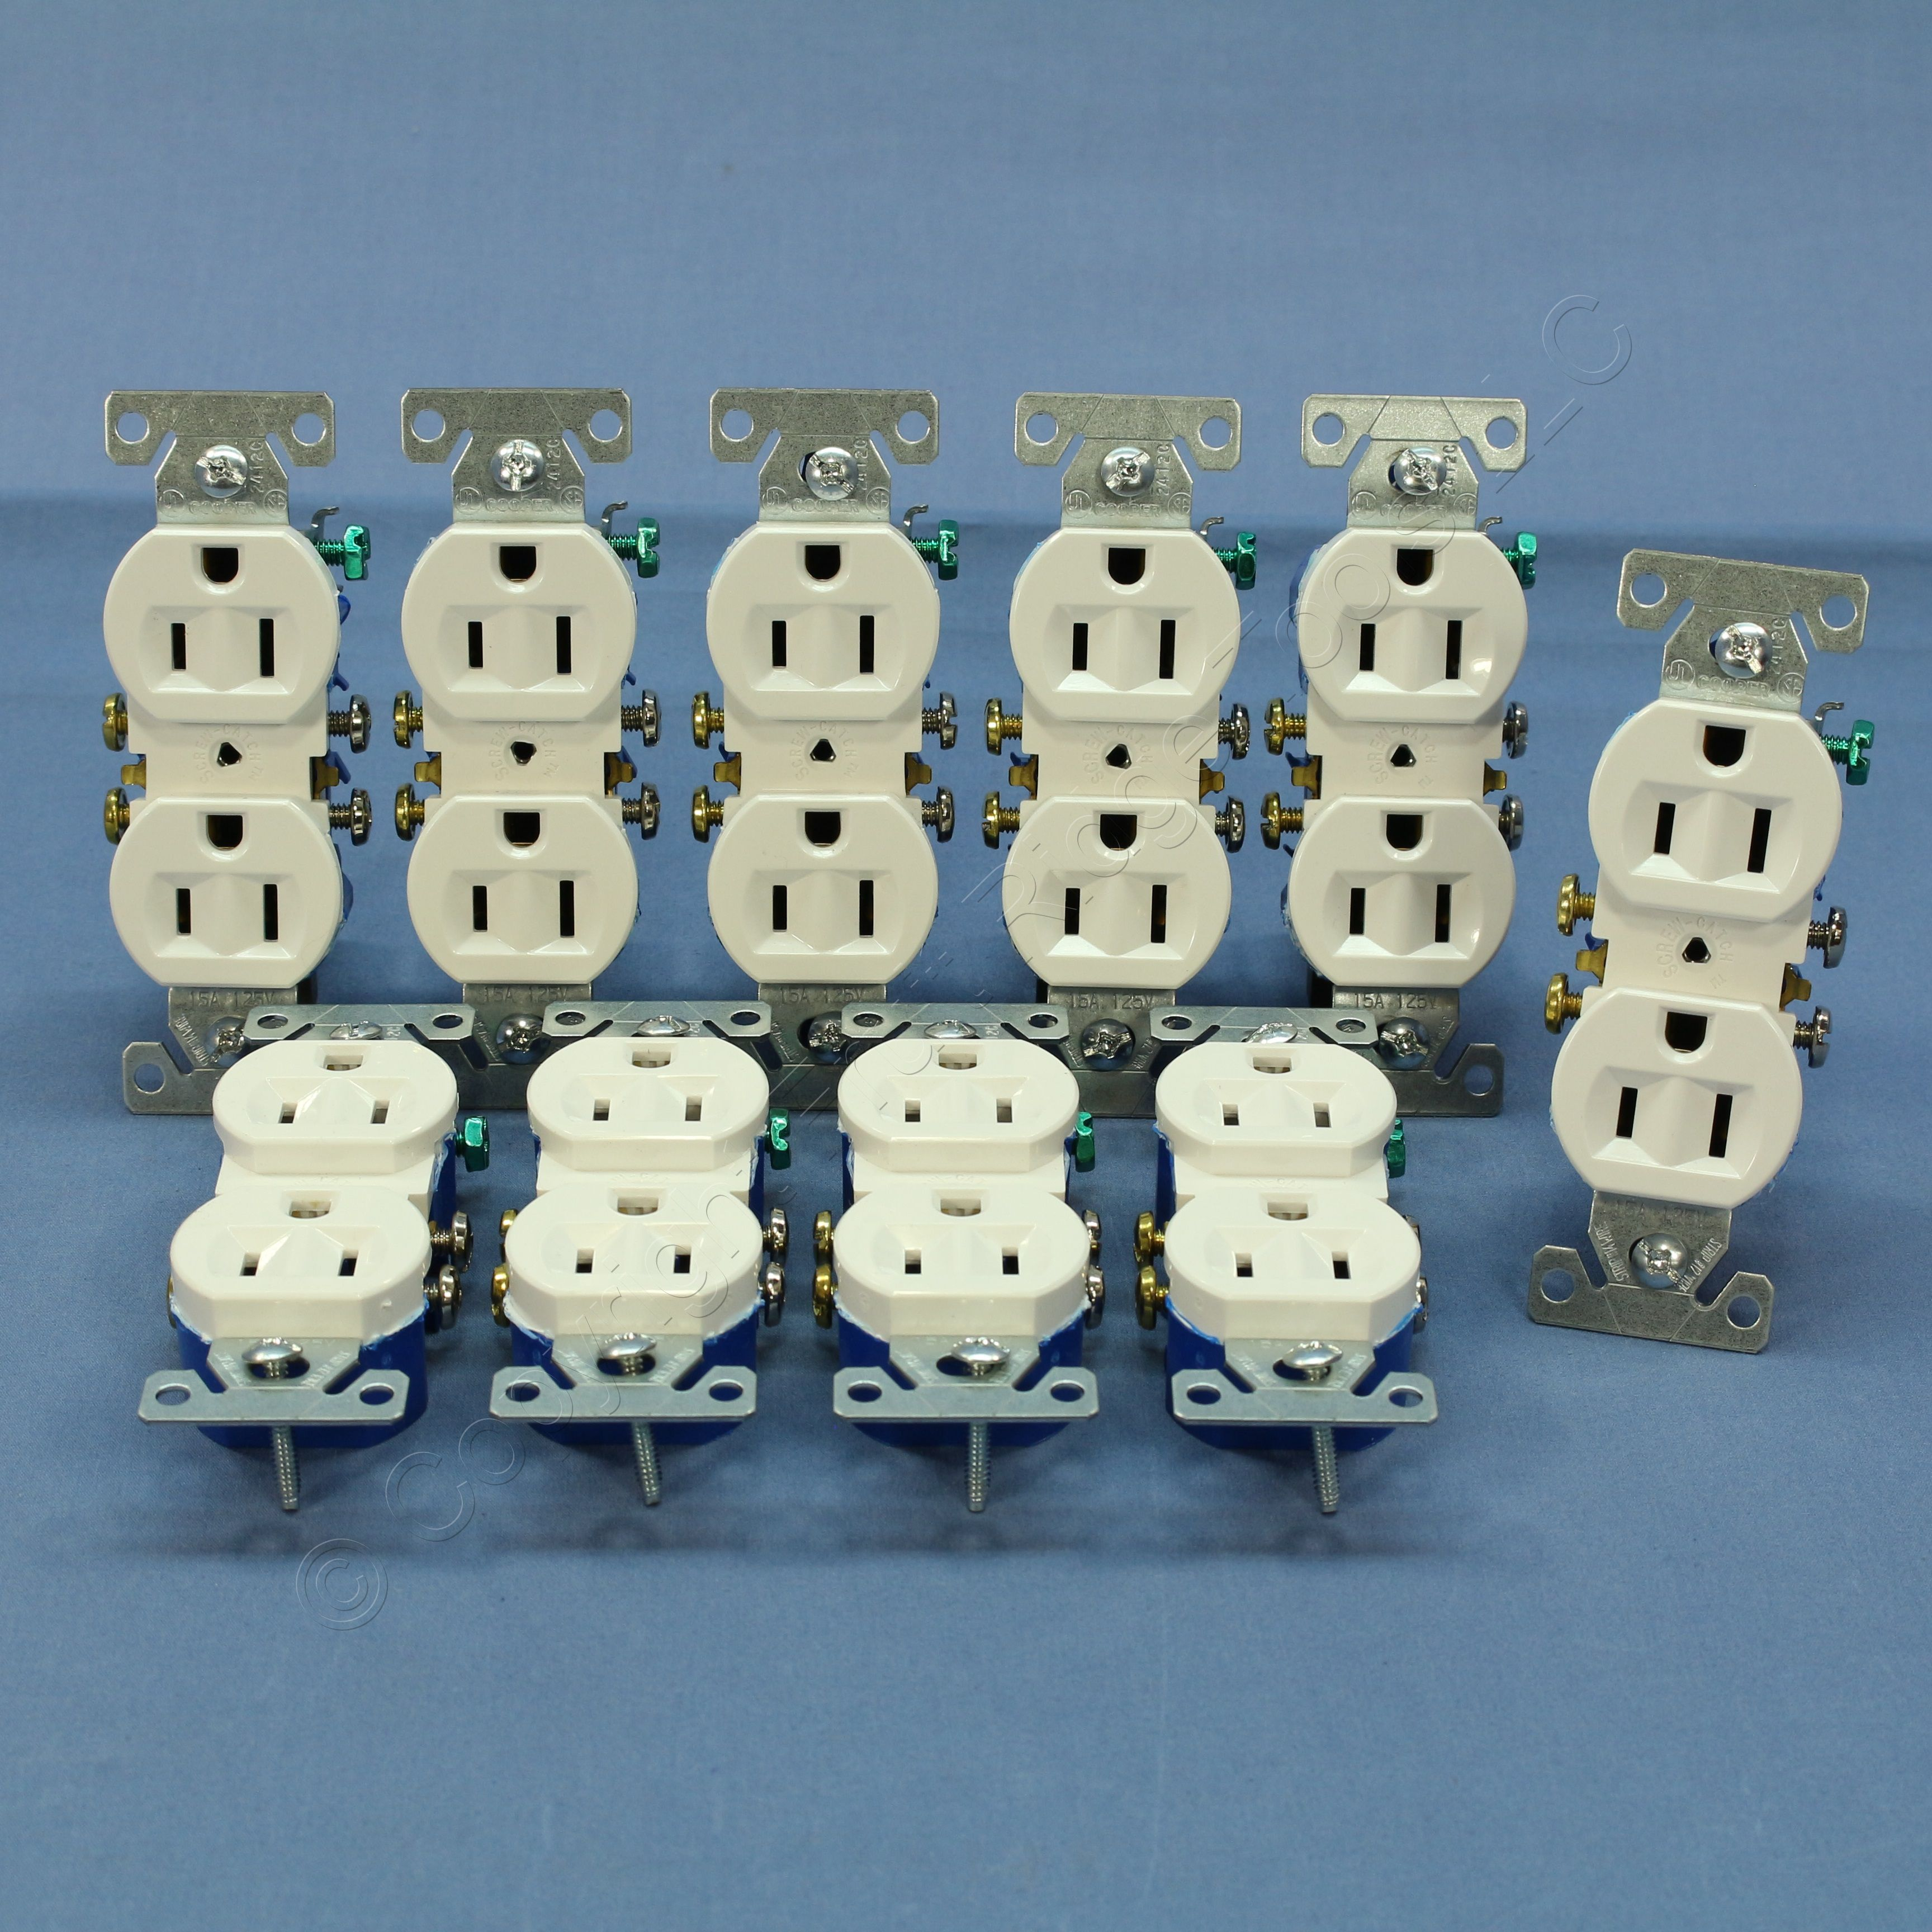 10 Cooper White Residential Duplex Outlet Receptacles NEMA 5-15R 15A ...